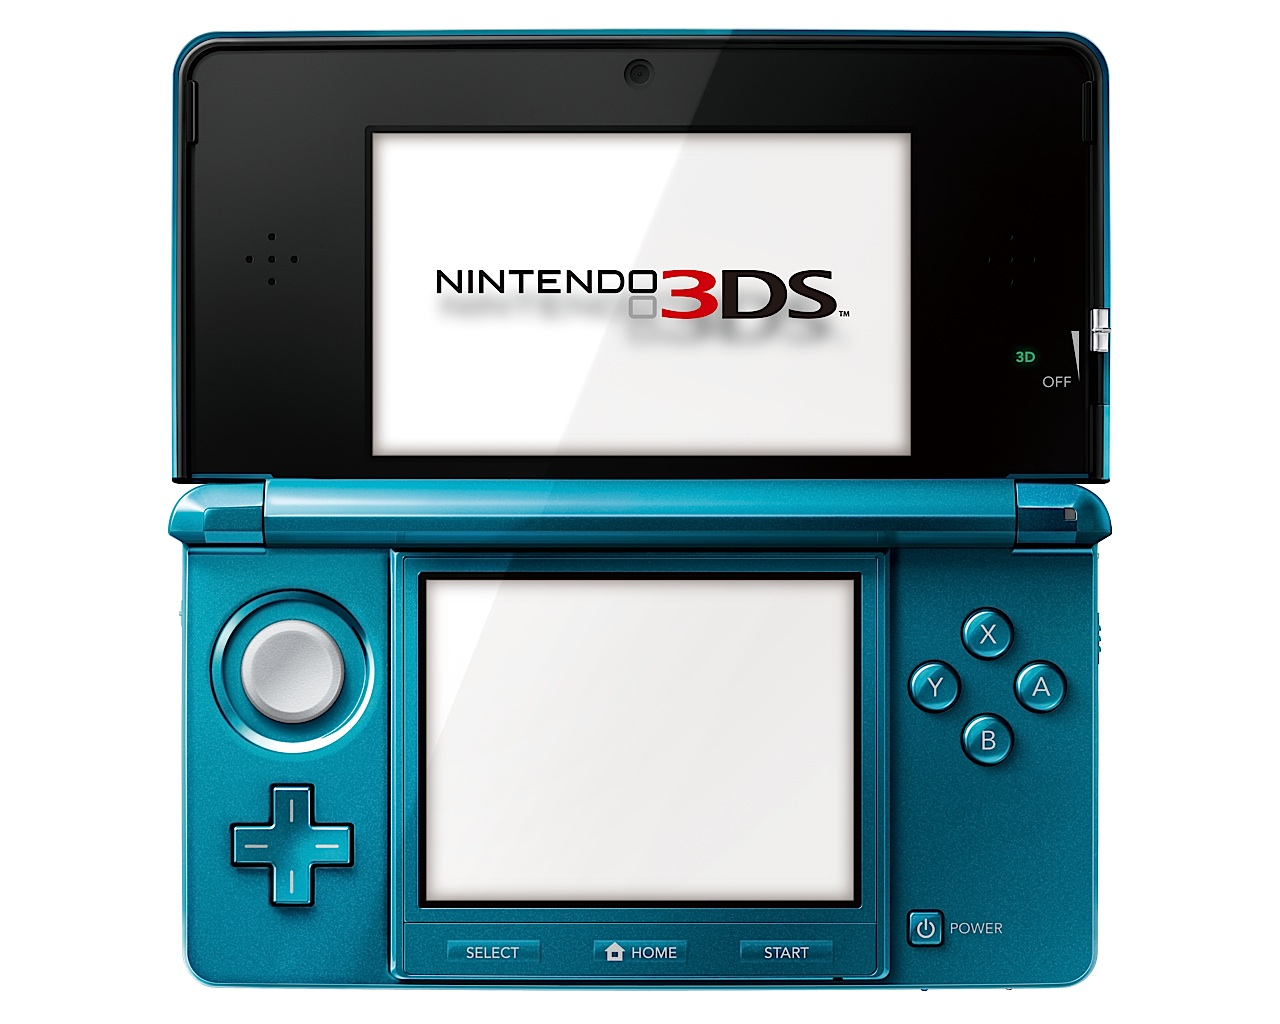 https://nintendookie.files.wordpress.com/2011/01/3ds-with-logo.jpg